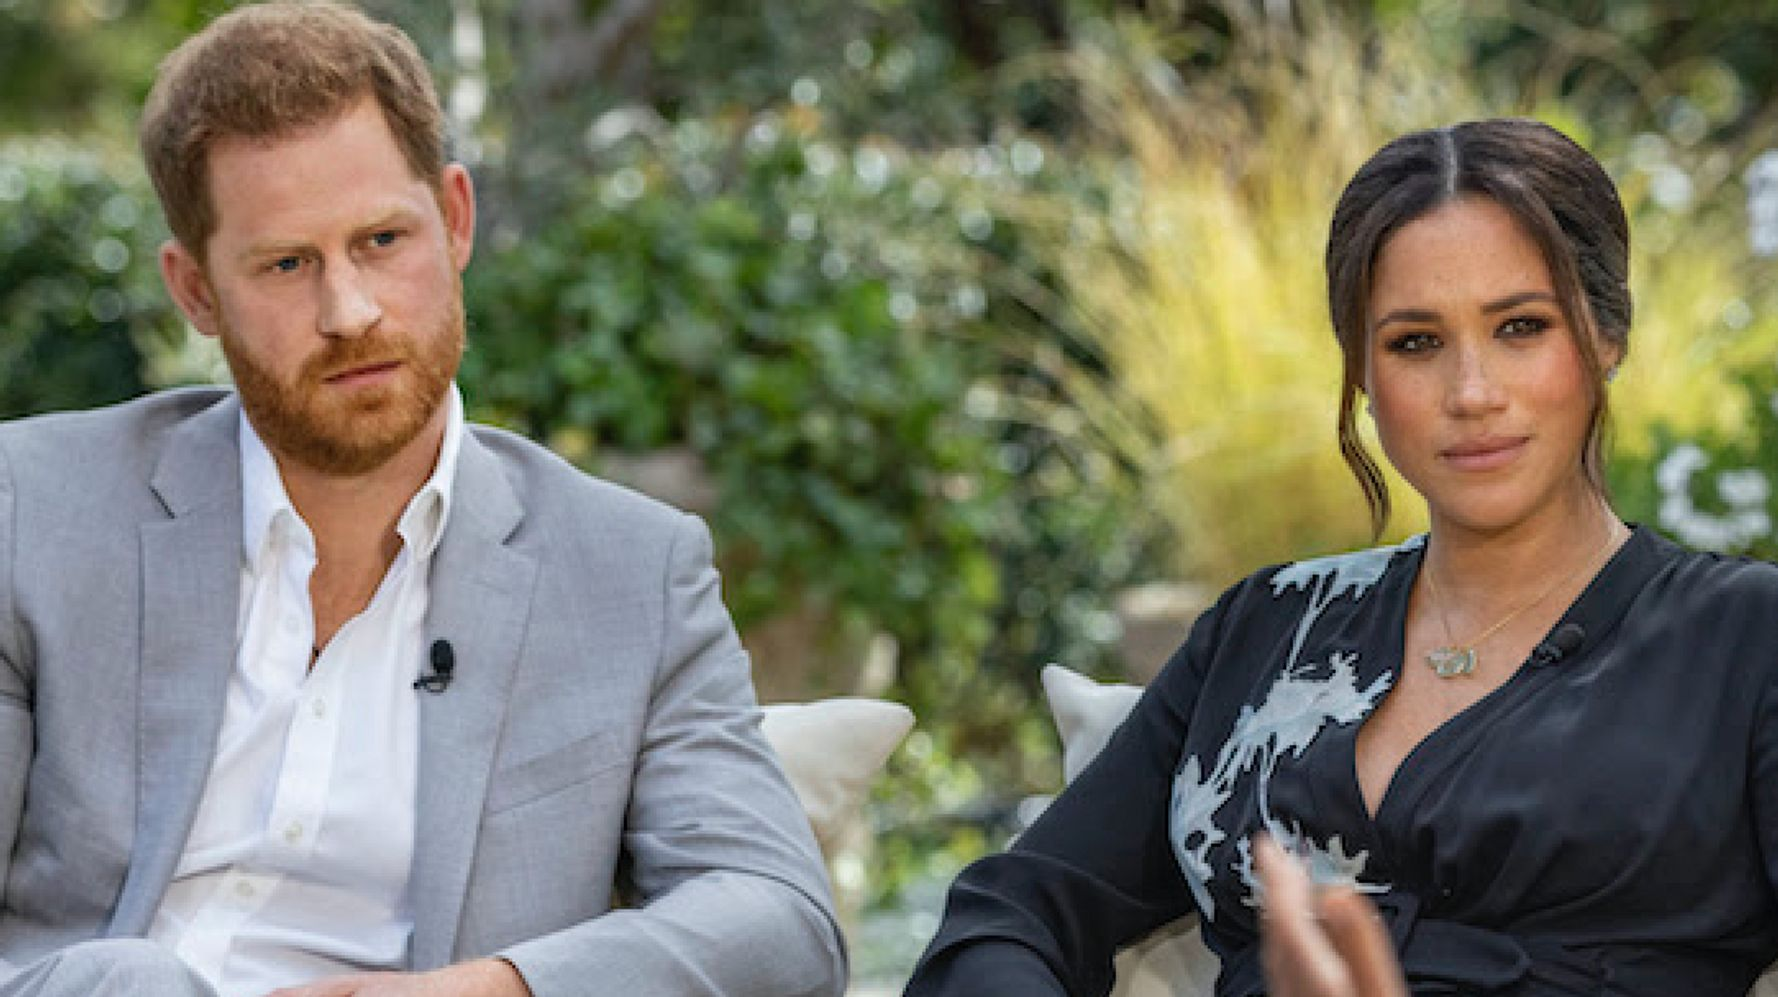 Meghan Markle Alludes To Rigid Royal Restrictions In New Oprah Clip